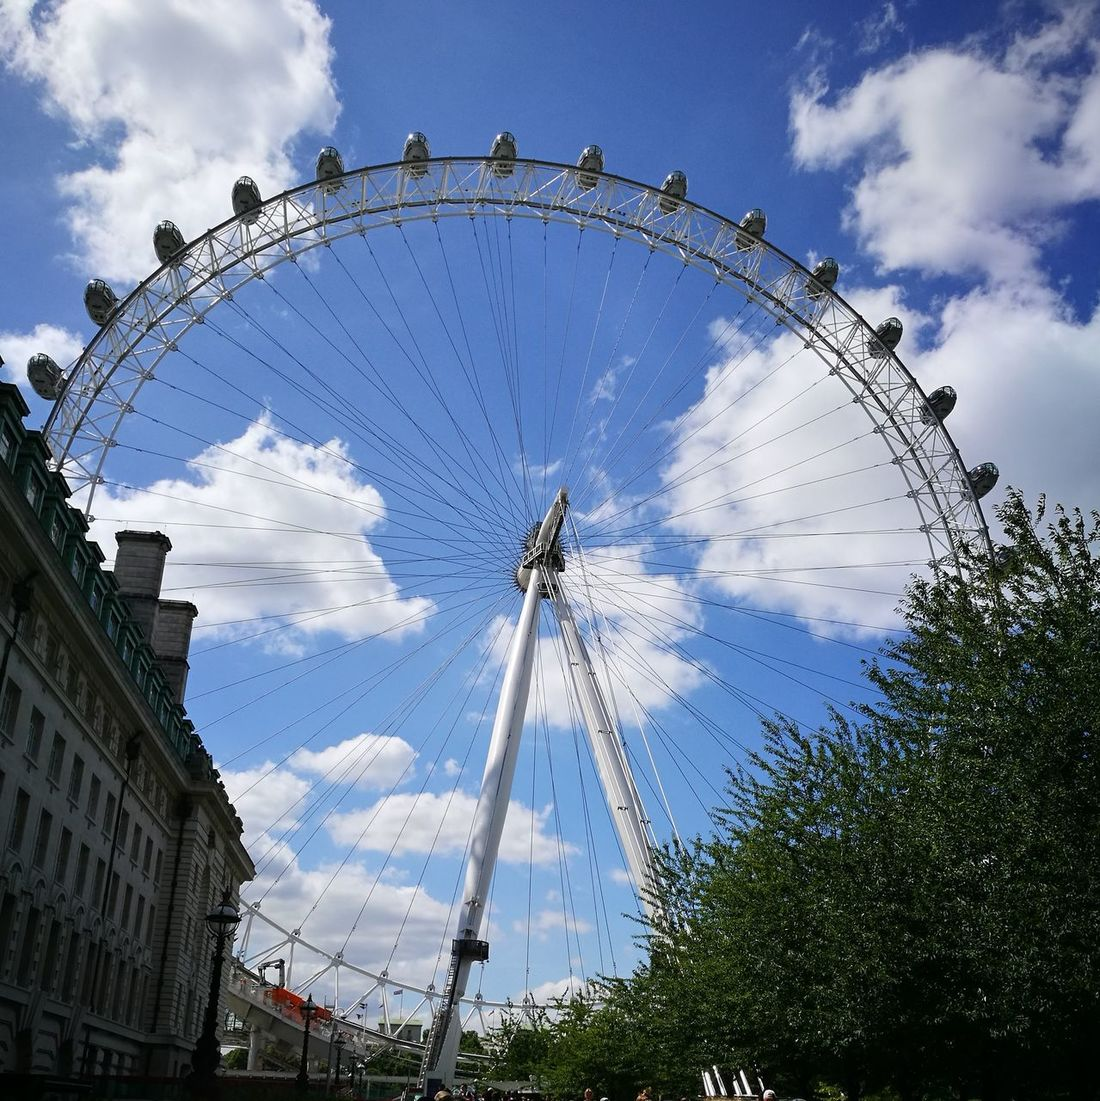 EyeEm LOST IN London London Love Special Day In London EyeEm Selects Summer Panoramic LondonEye London Eye Different Perspective Your Ticket To Europe